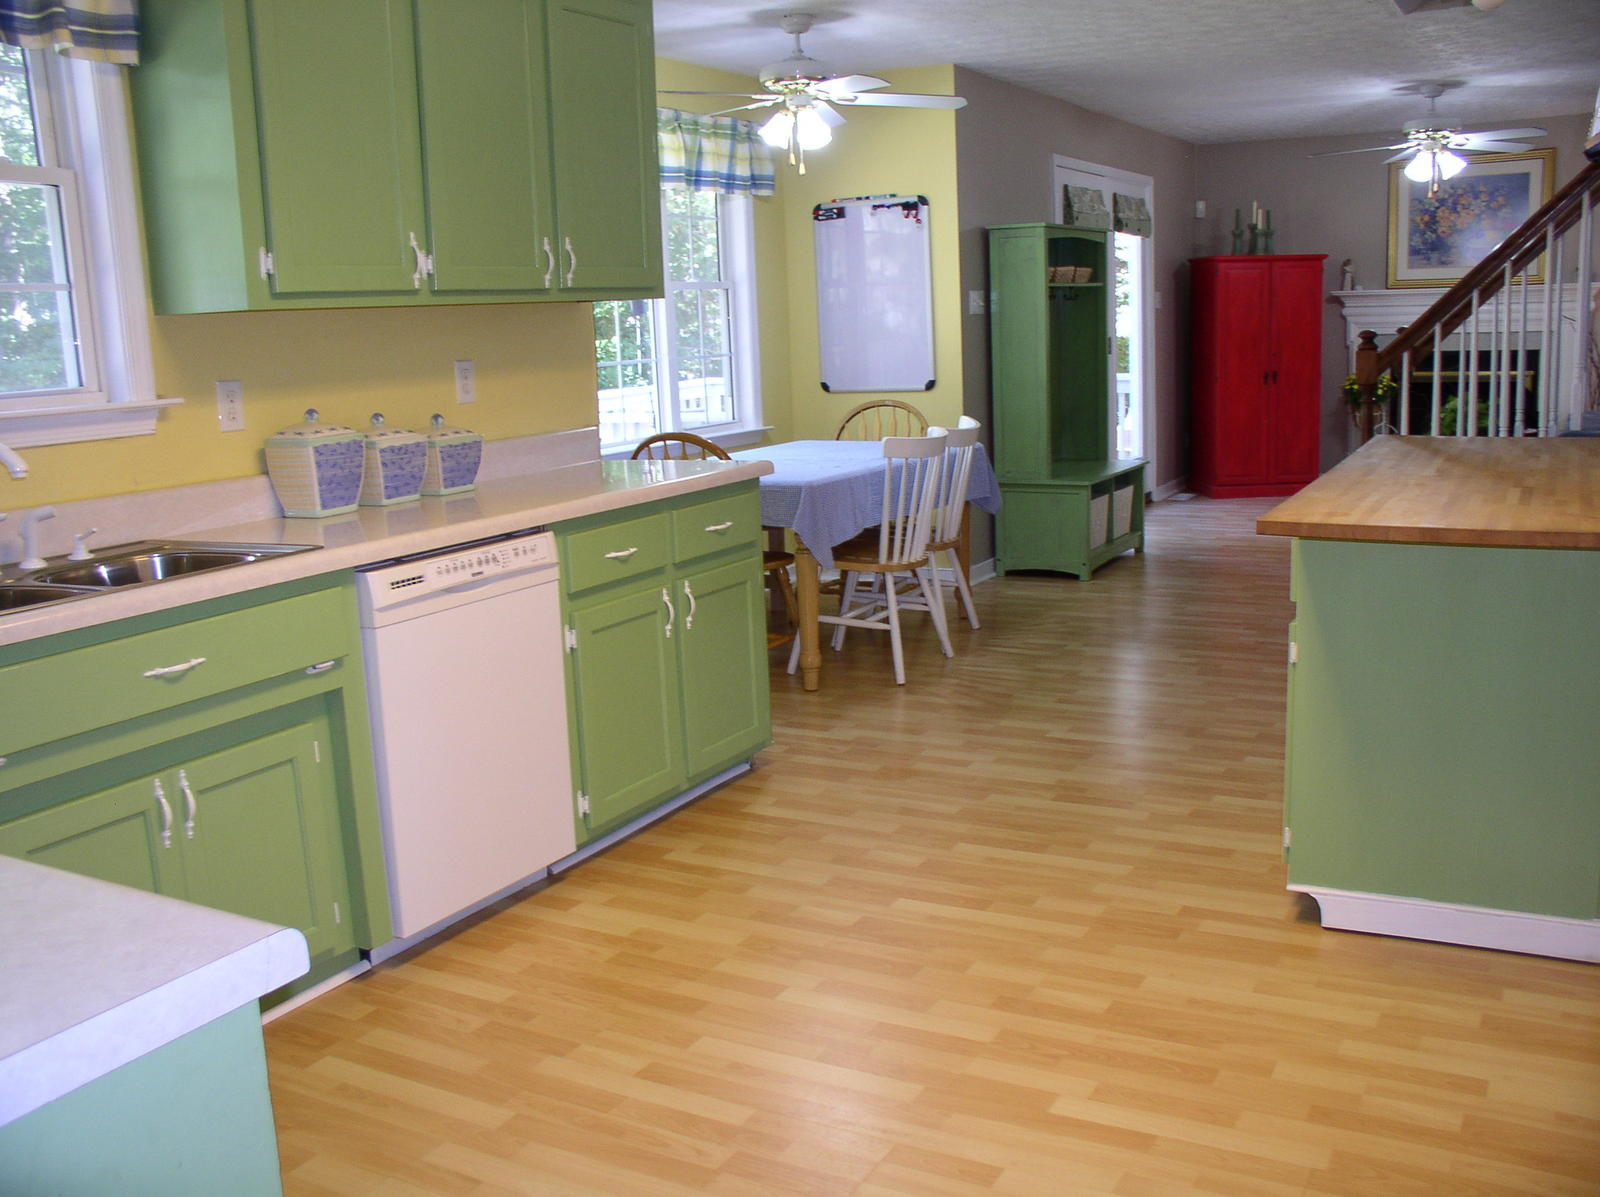 Painting your kitchen cabinets painting tips from the pros for Best kitchen paint colors